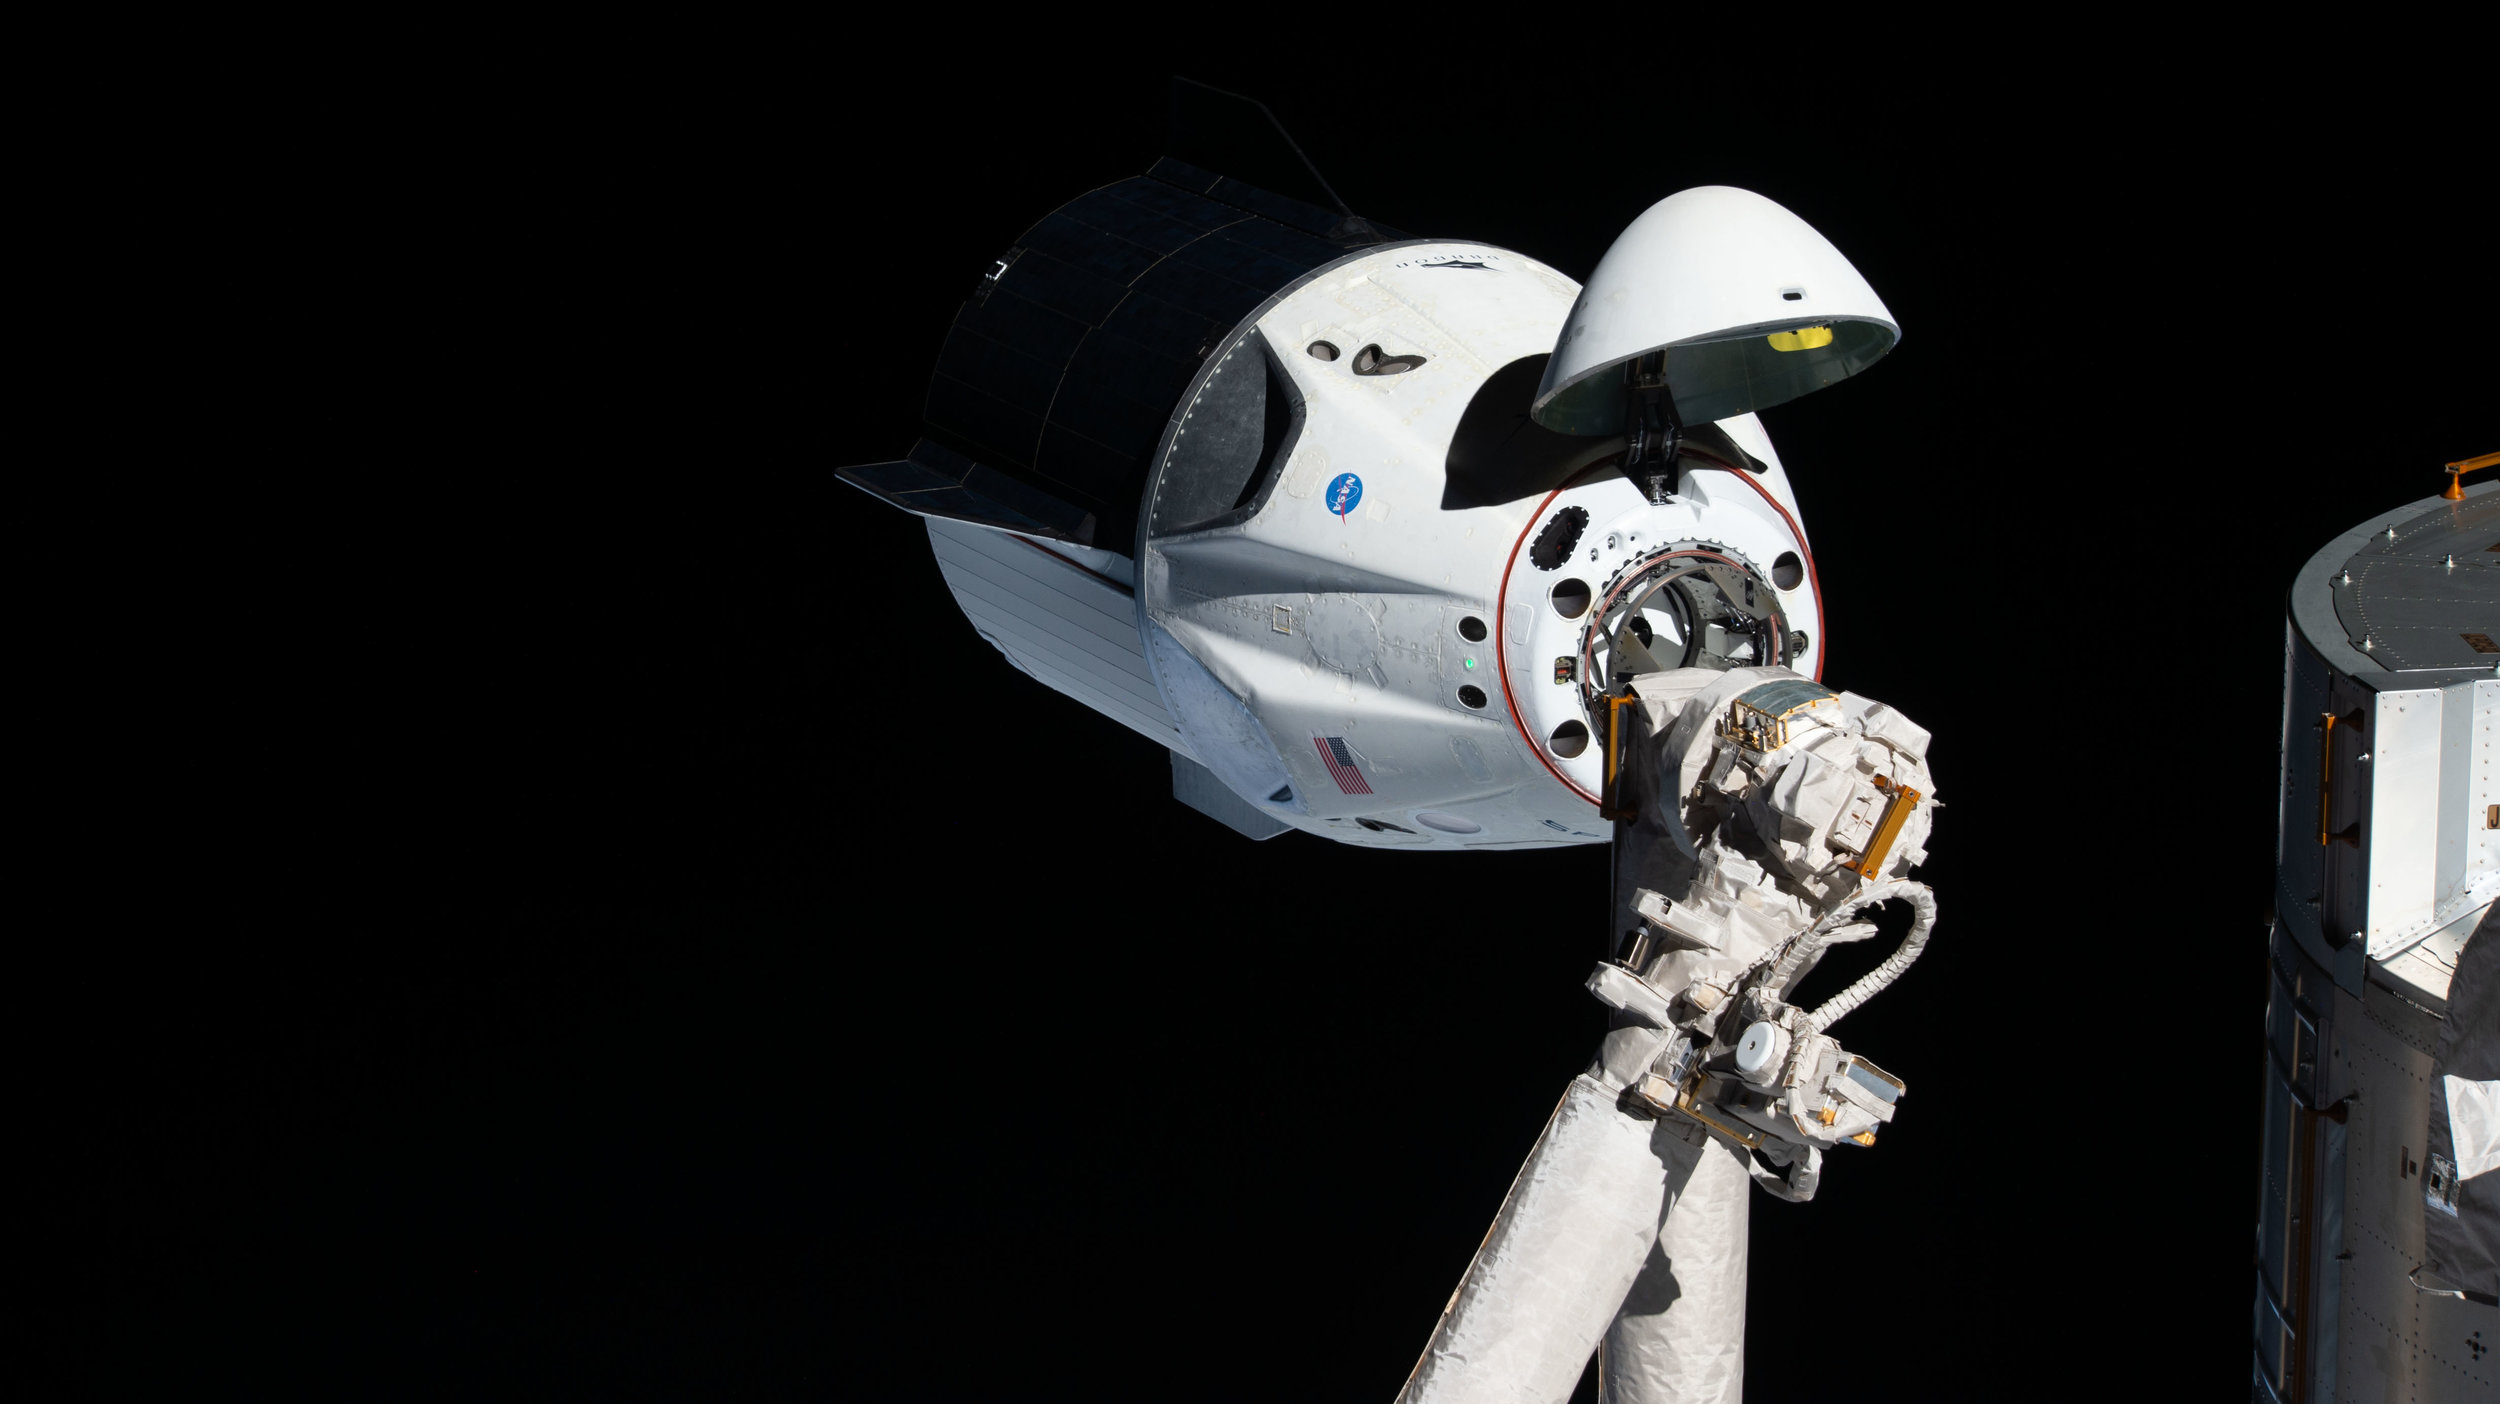 SpaceX's Crew Dragon Demo 1 mission approaches the International Space Station. Credit: NASA